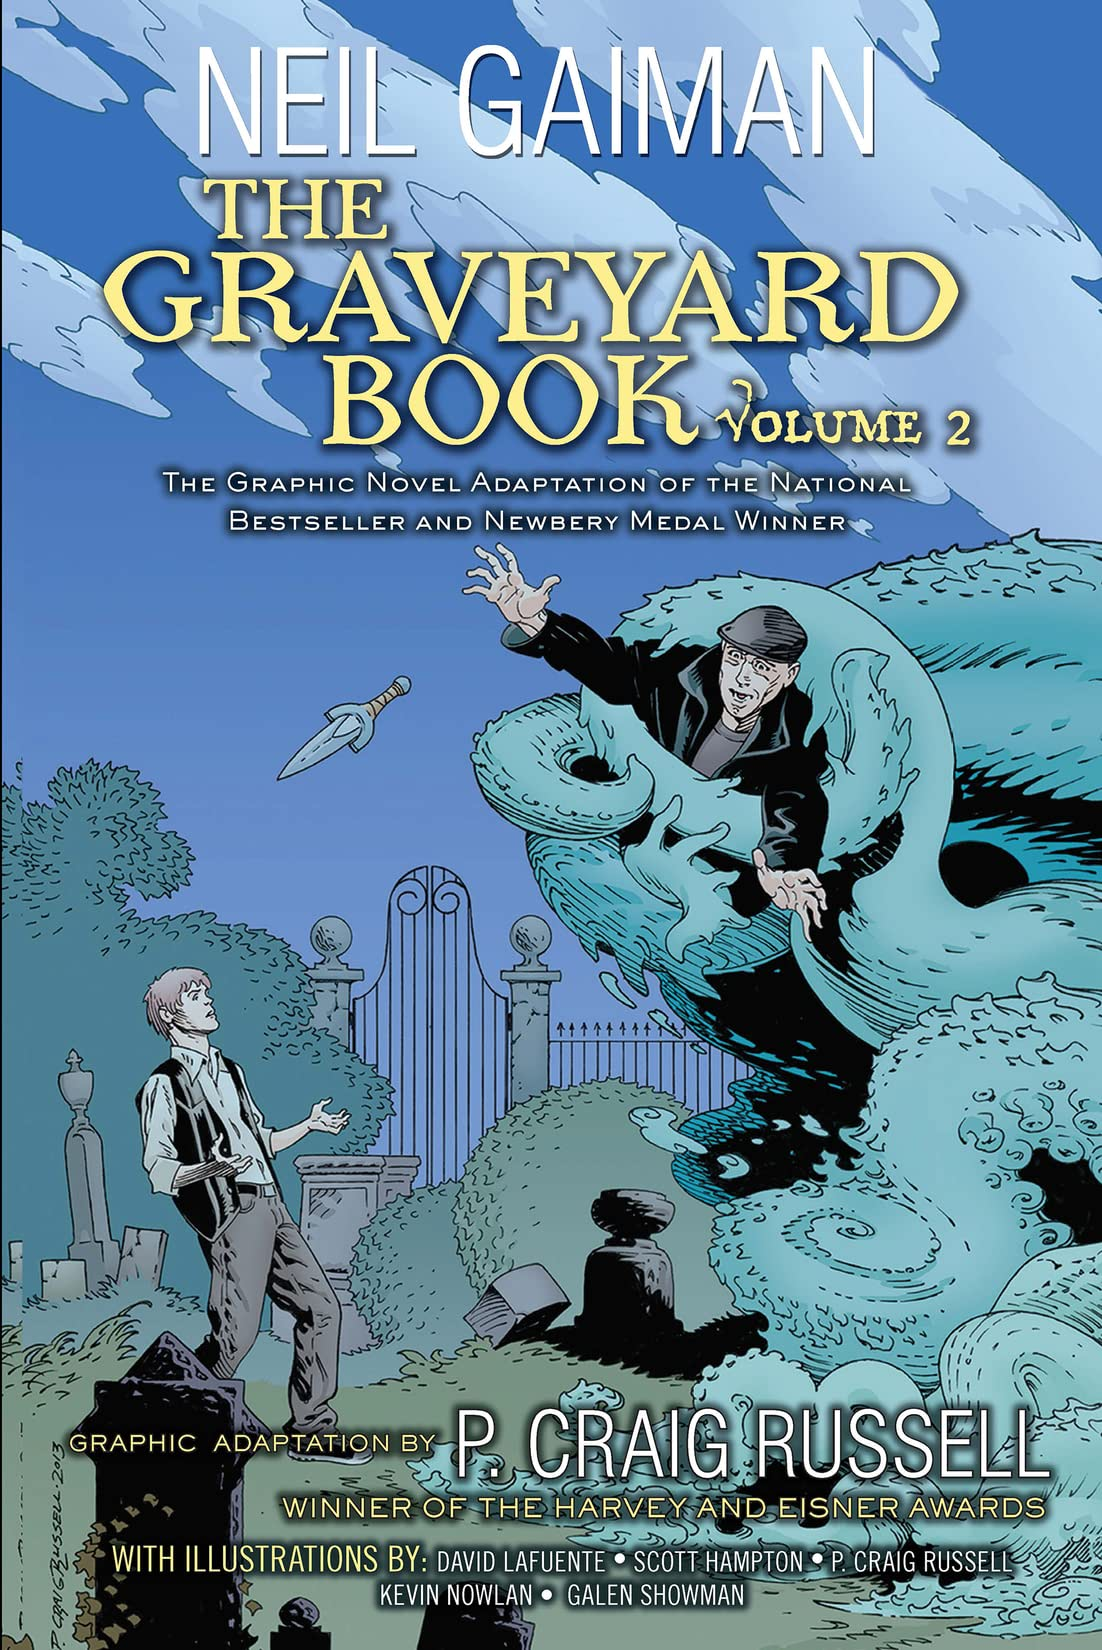 The Graveyard Book Graphic Novel Vol. 2